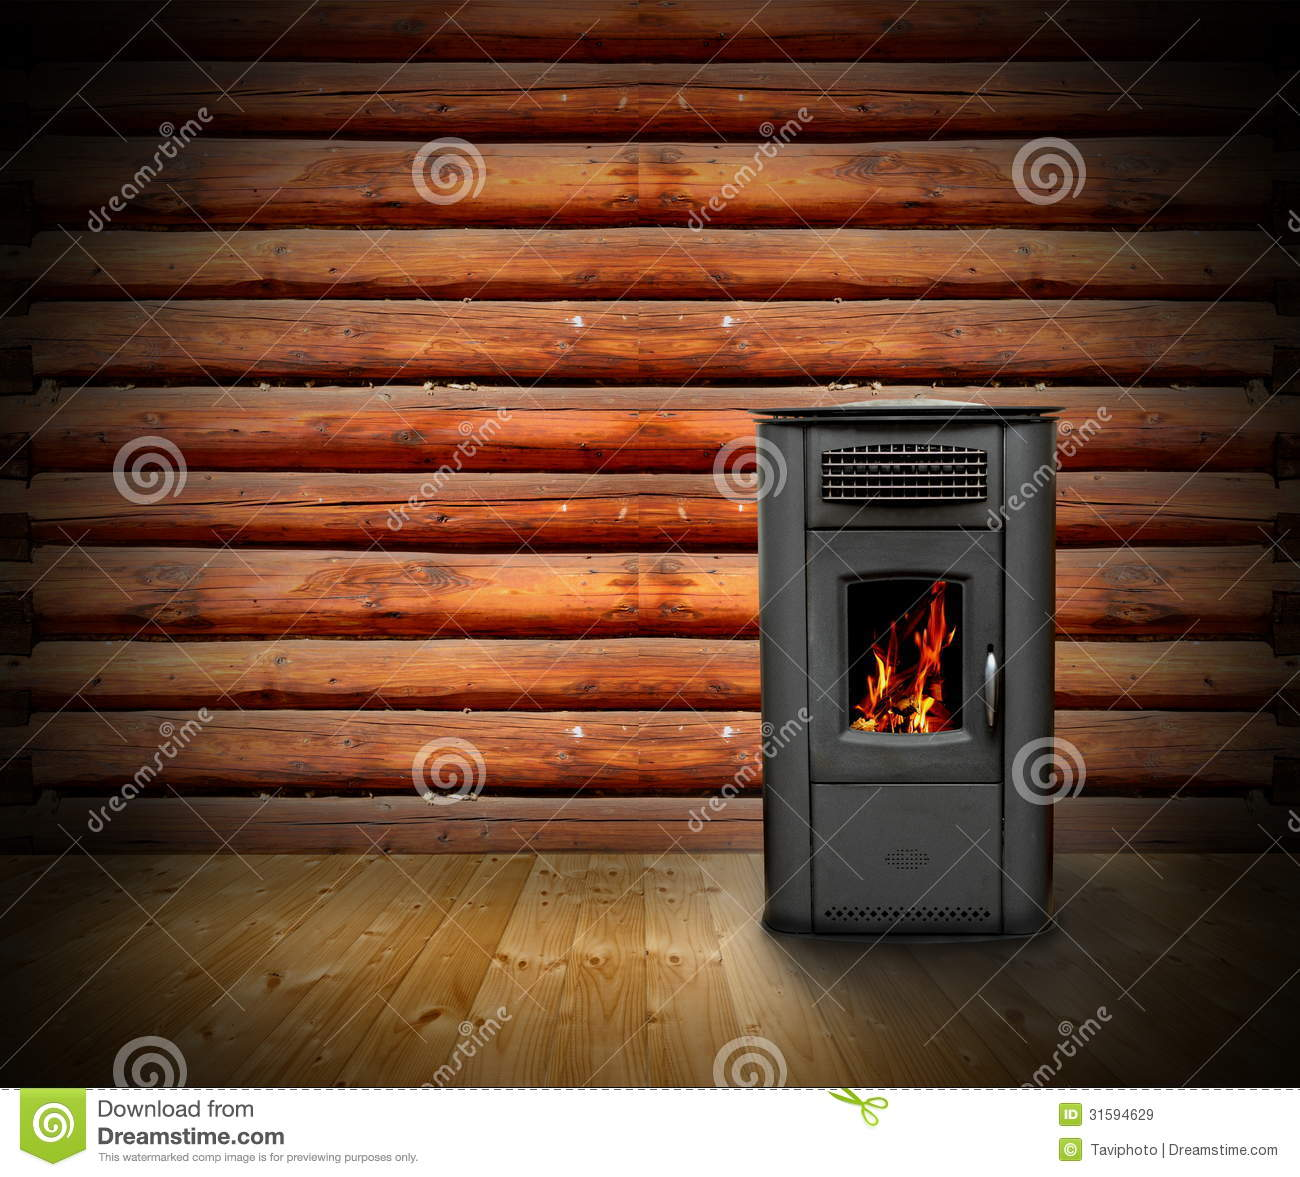 Wooden Cabin Interior Background Stock Image Image 31594629